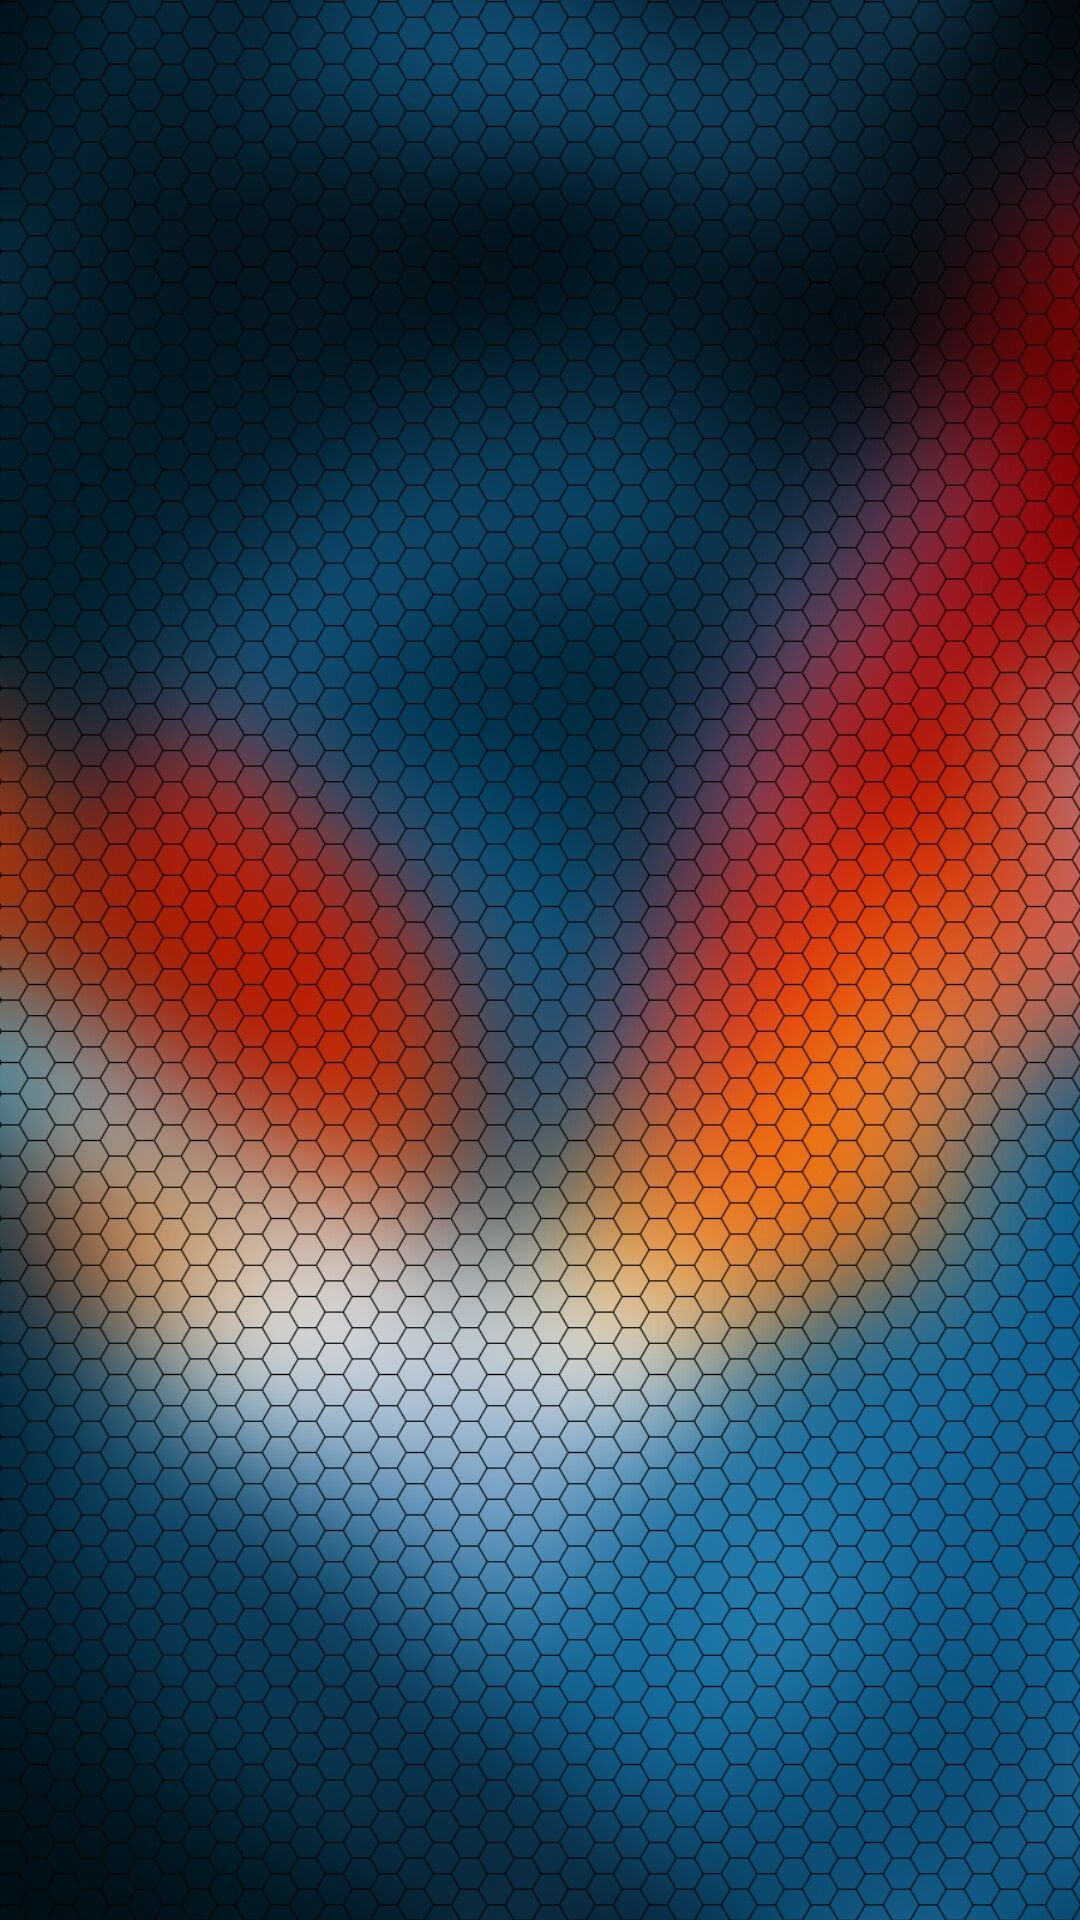 Abstract Iphone Wallpaper Simple Iphone Wallpaper Phone Wallpaper Smartphone Wallpaper